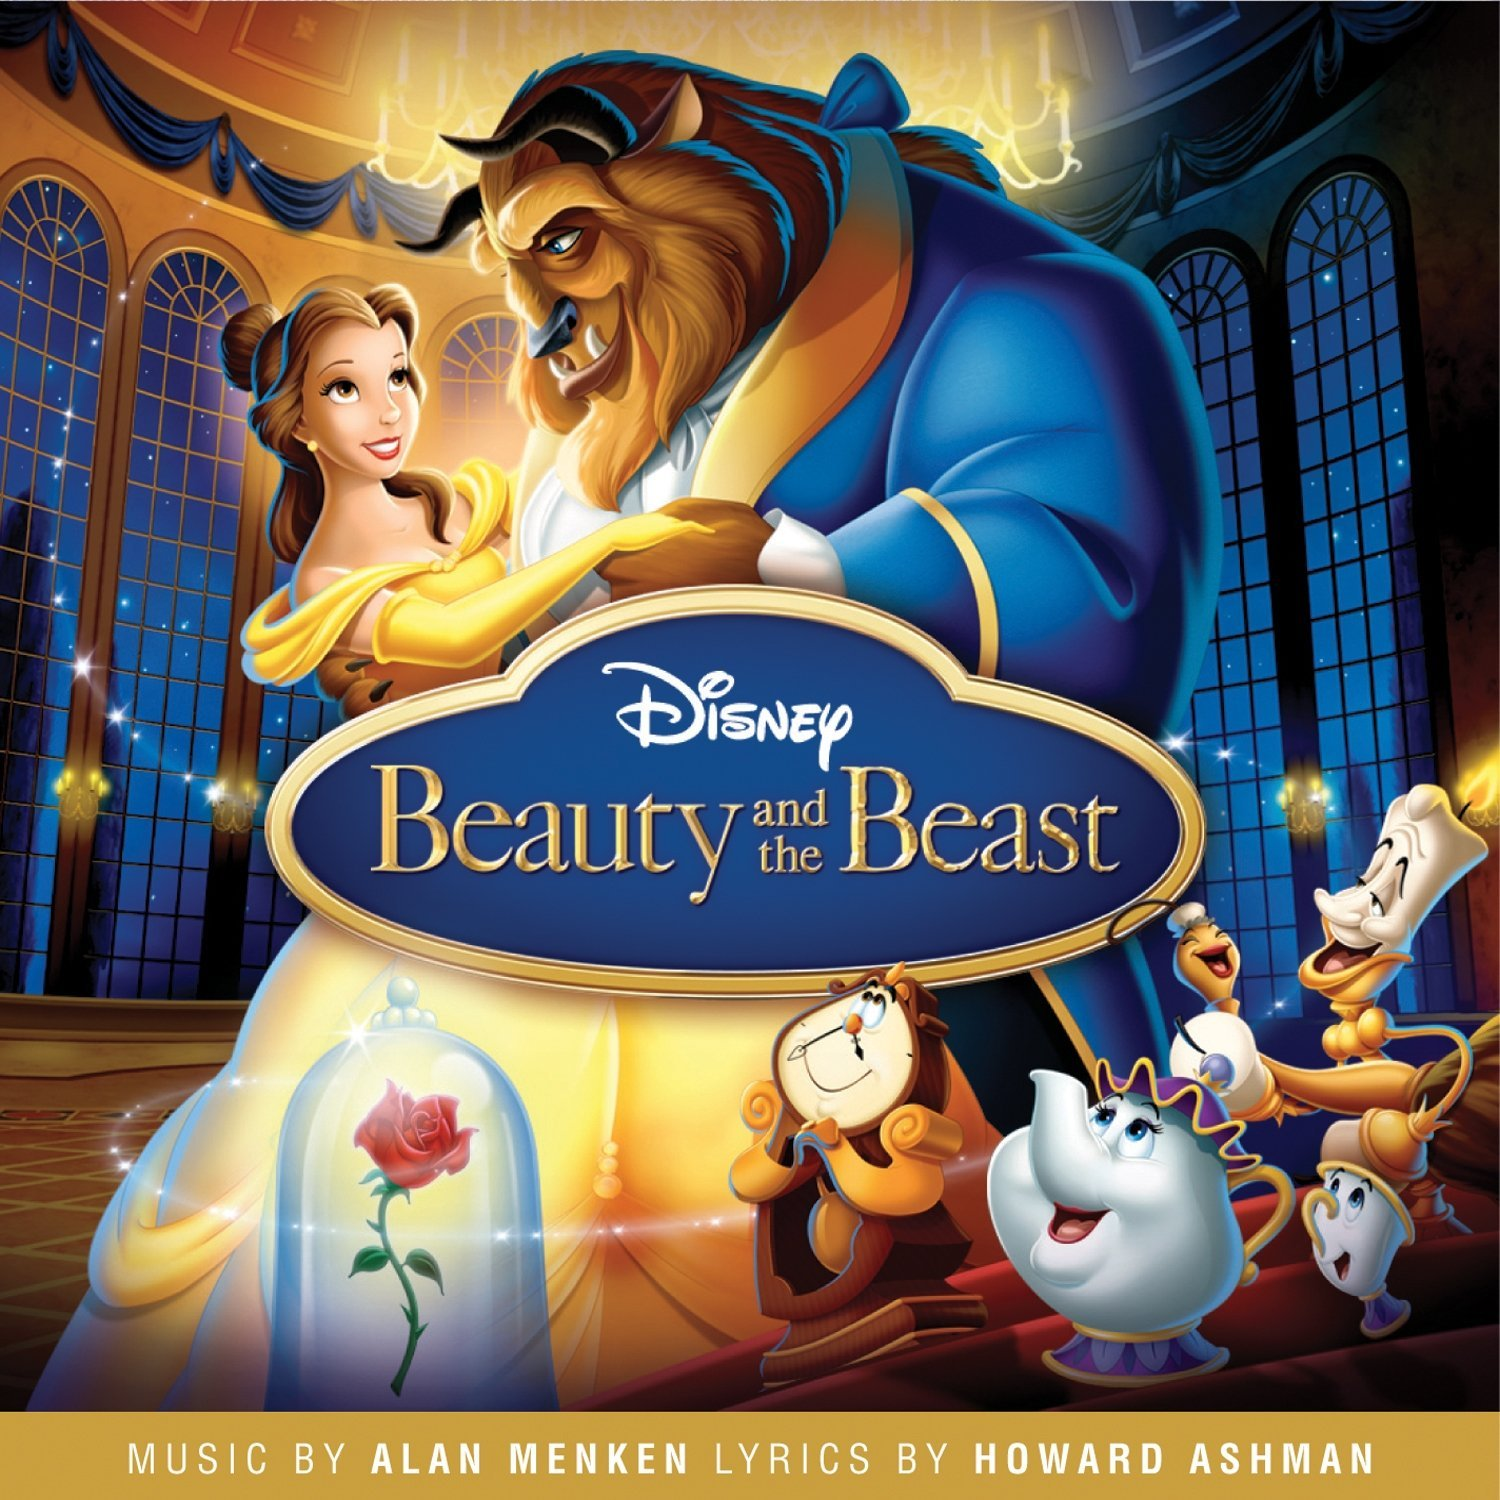 The Beauty And The Beast Wallpaper 2211635 Hd Wallpaper